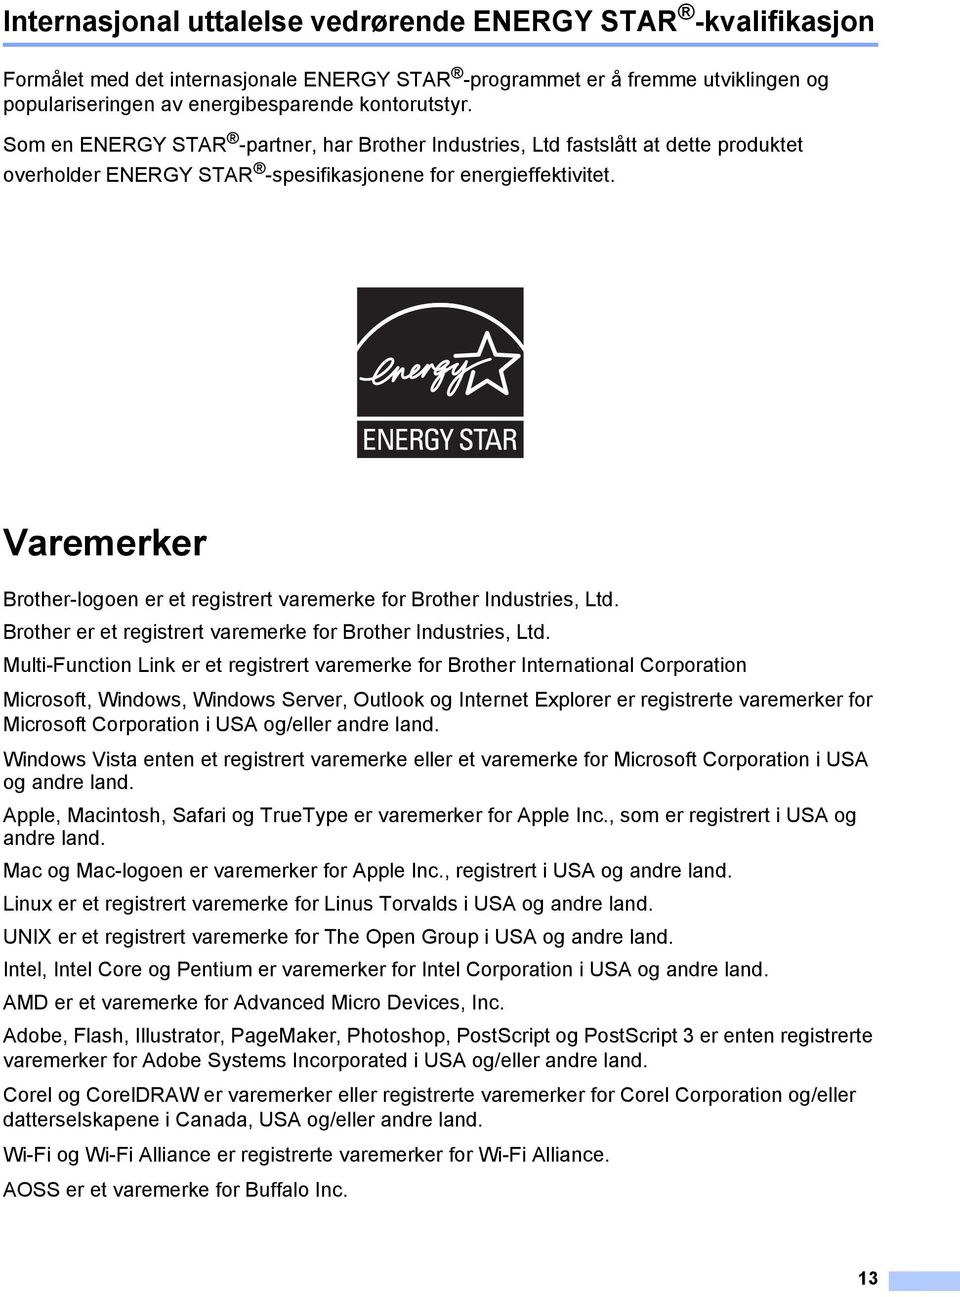 Varemerker Brother-logoen er et registrert varemerke for Brother Industries, Ltd. Brother er et registrert varemerke for Brother Industries, Ltd.